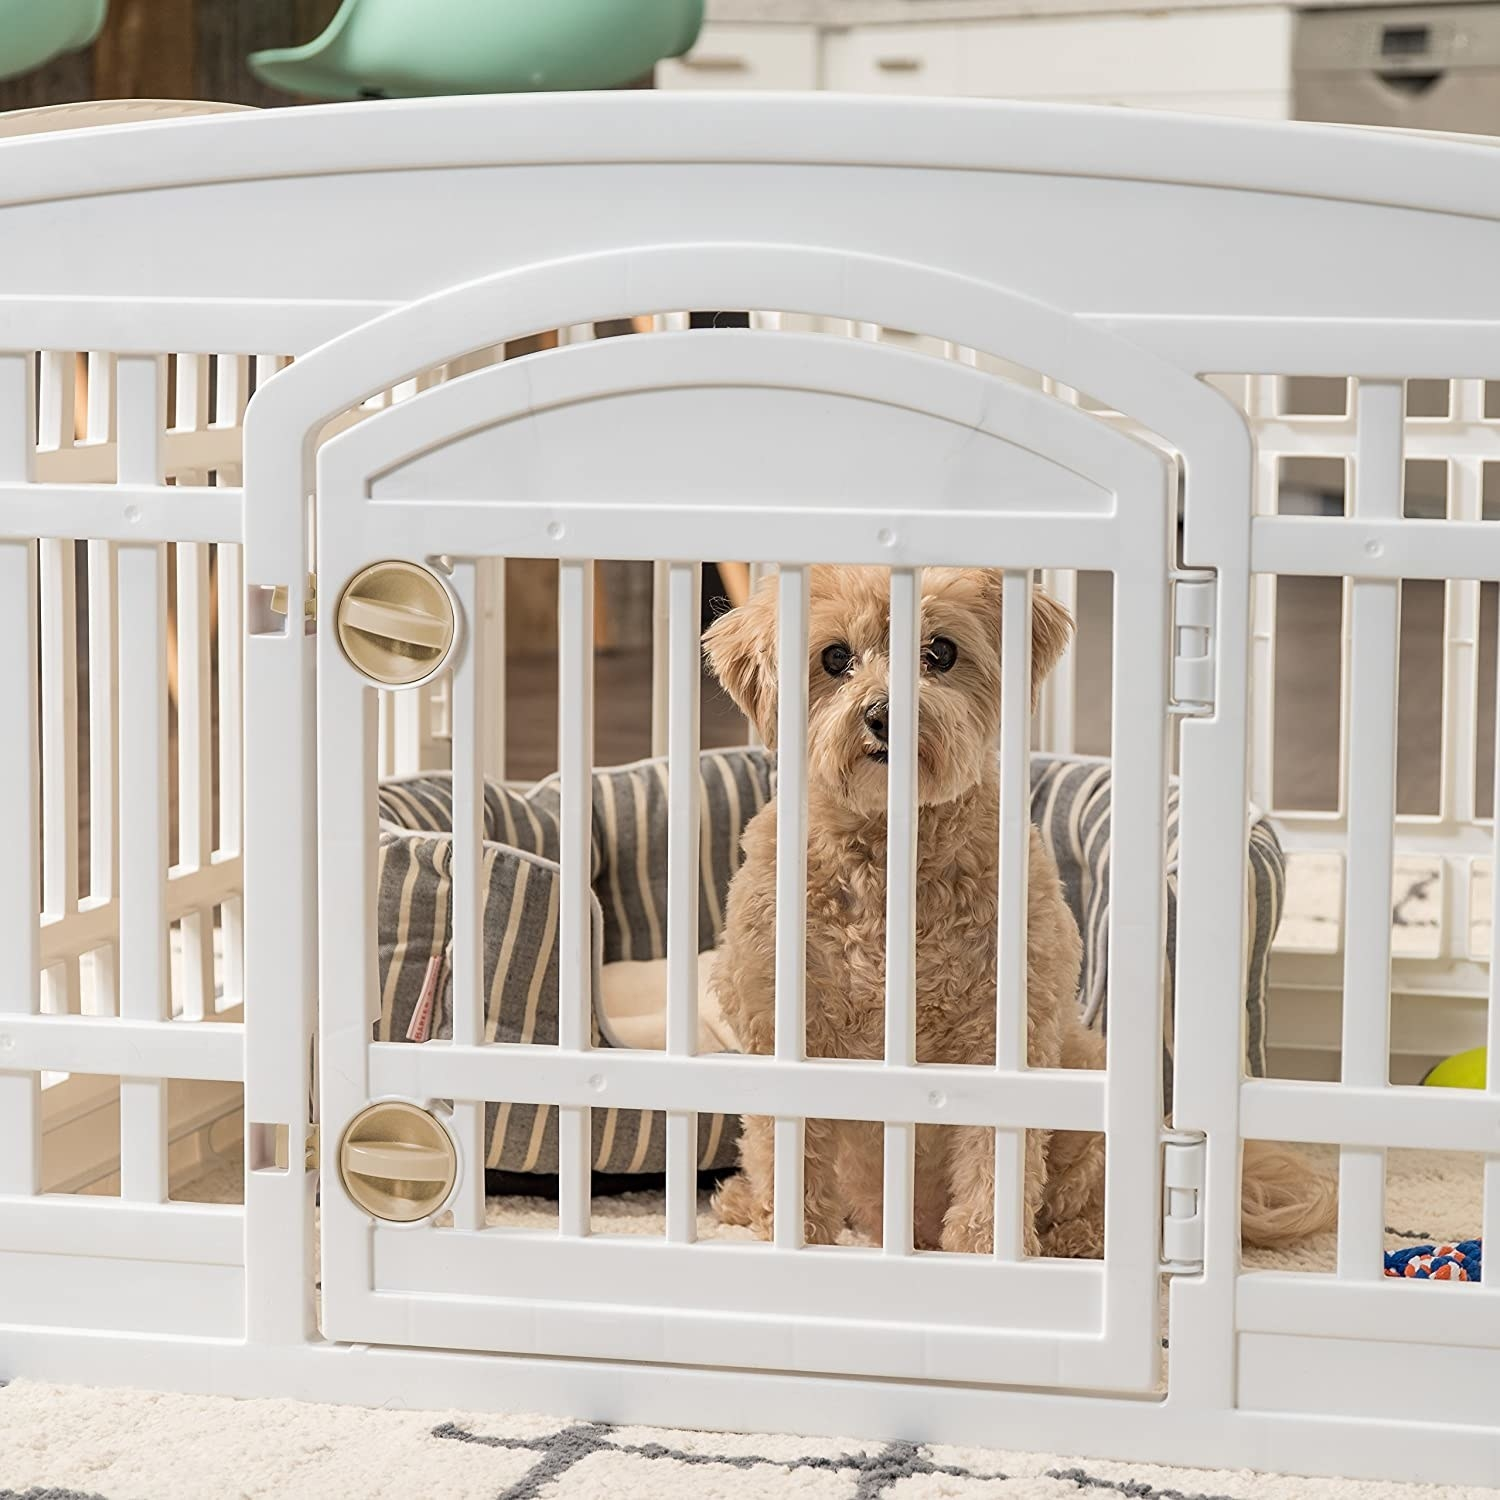 A dog in the playpen